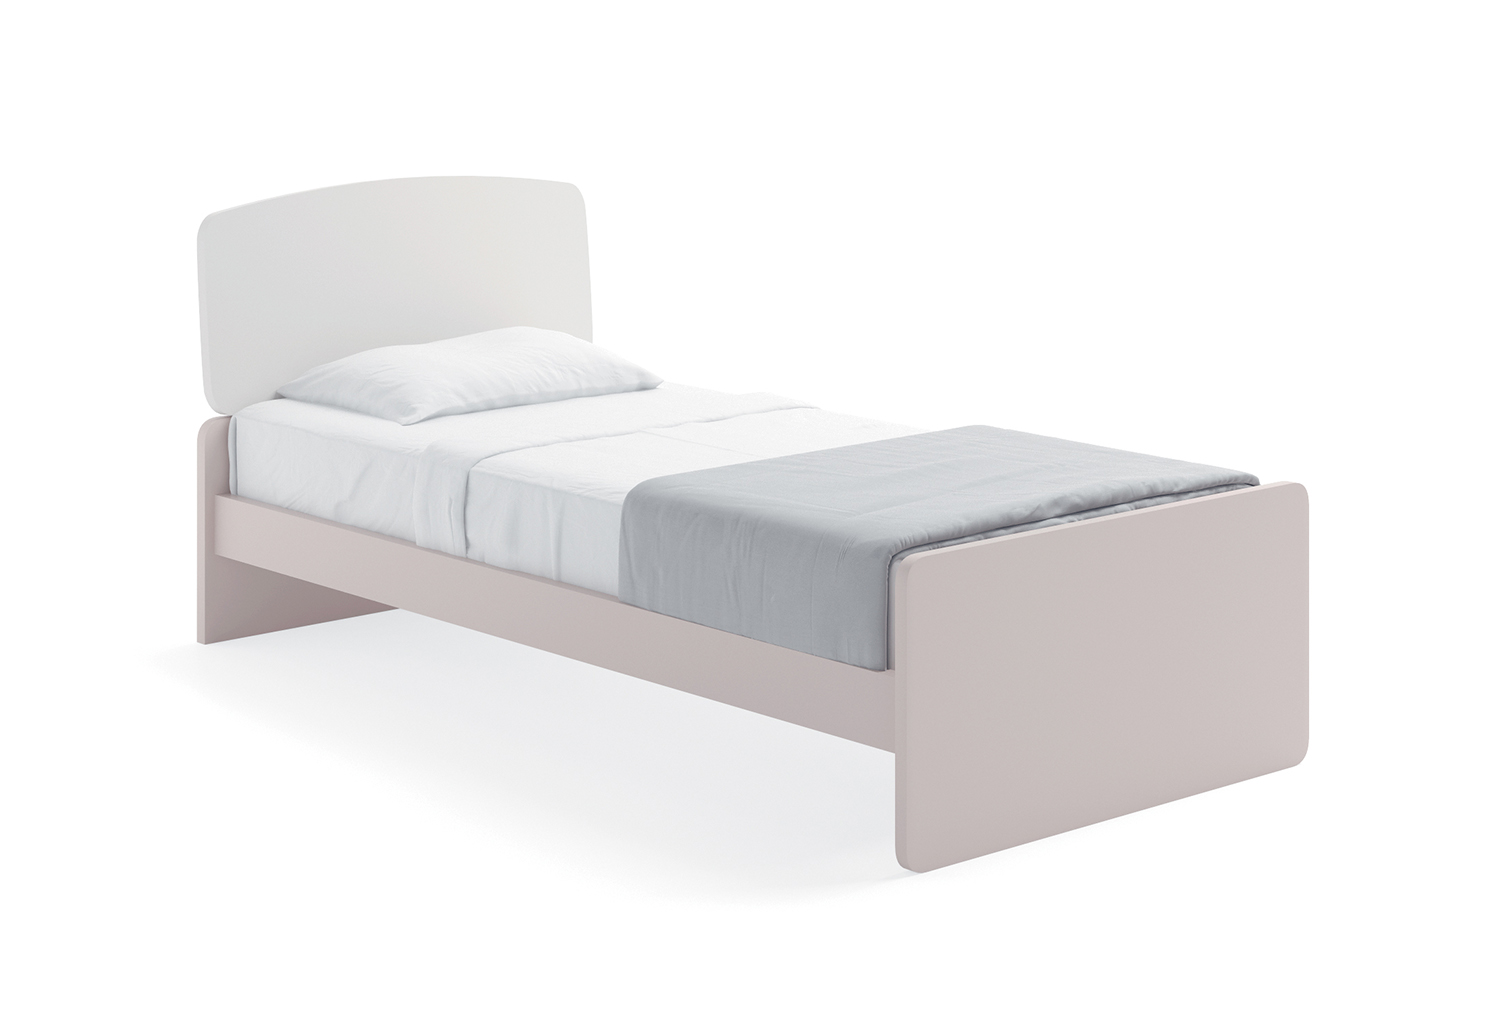 Elice low single bed frame with bicolour headboard